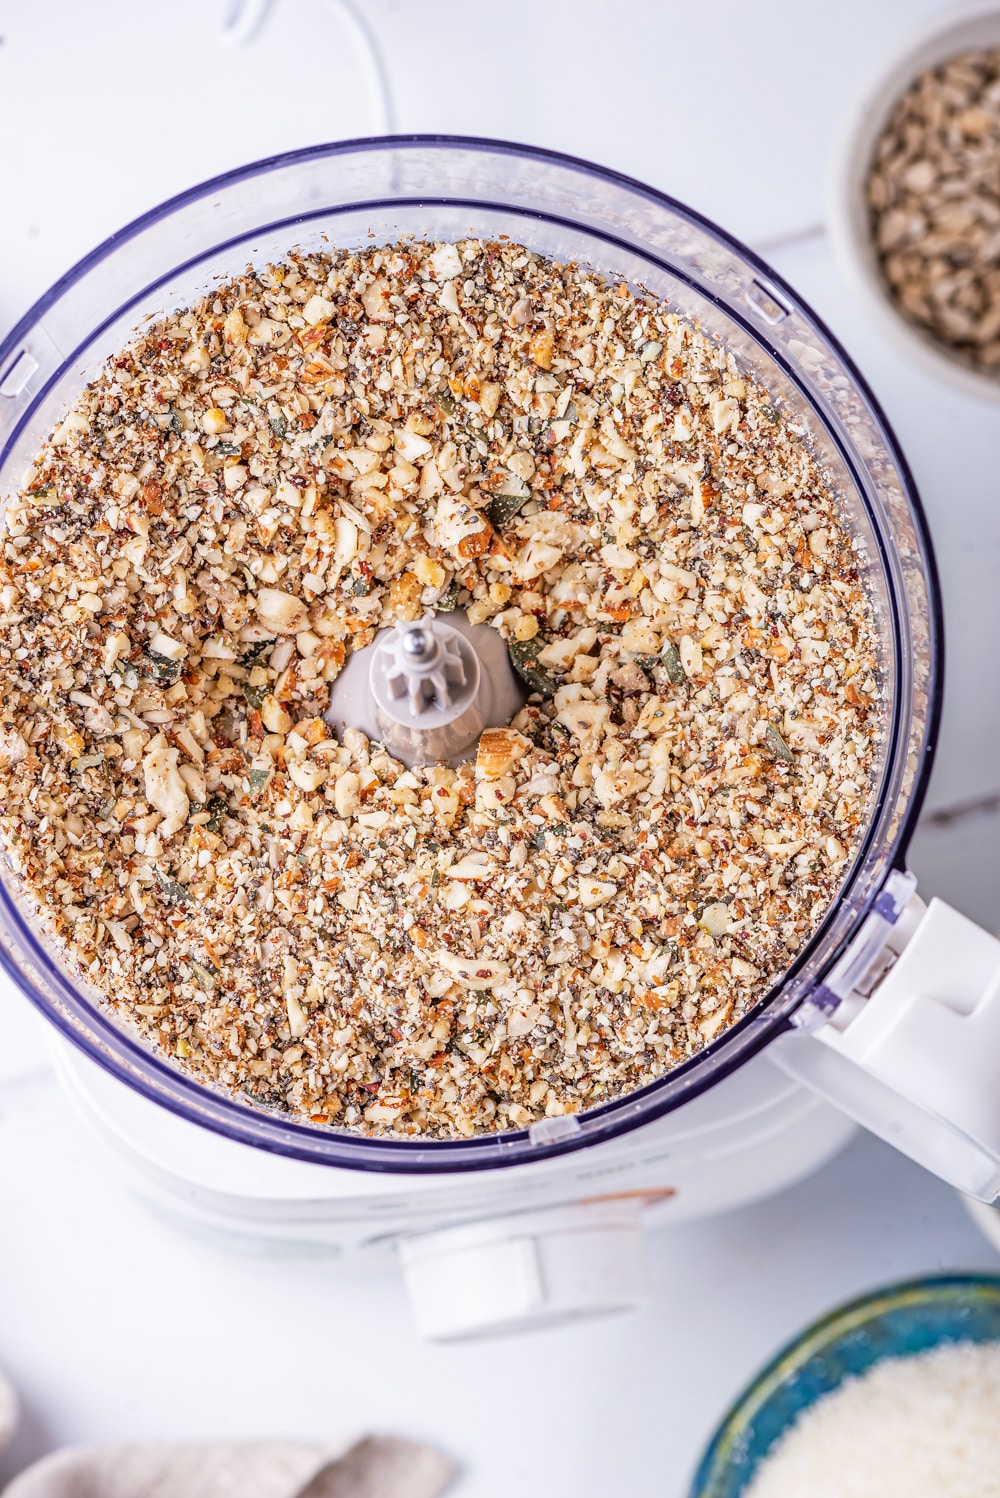 A food processor filled with crushed up nuts and seeds on a white table.